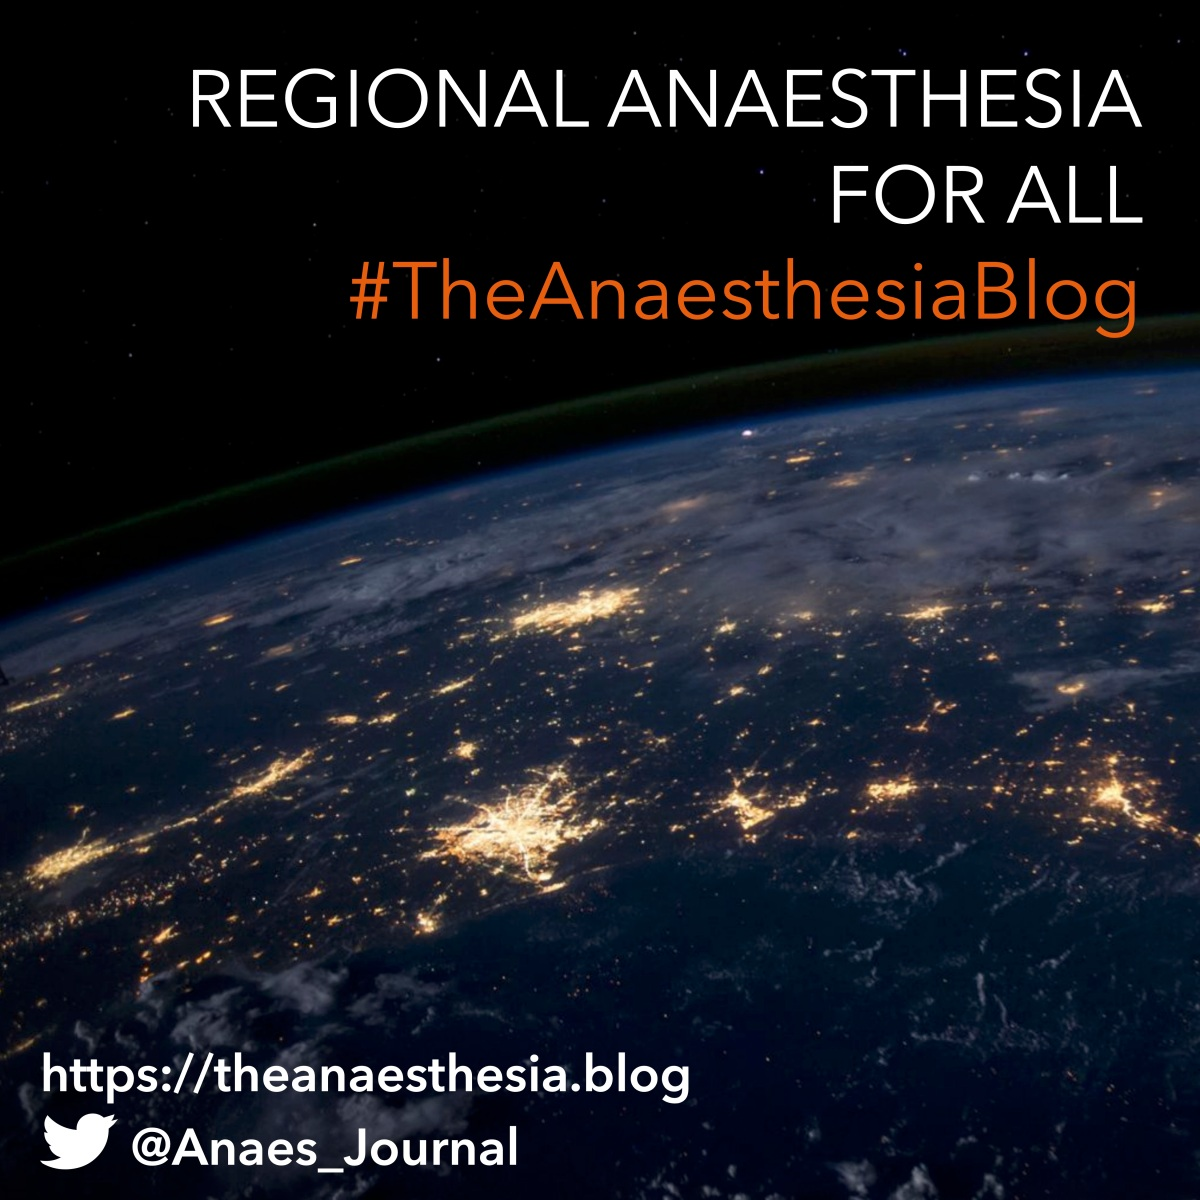 Regional anaesthesia for all